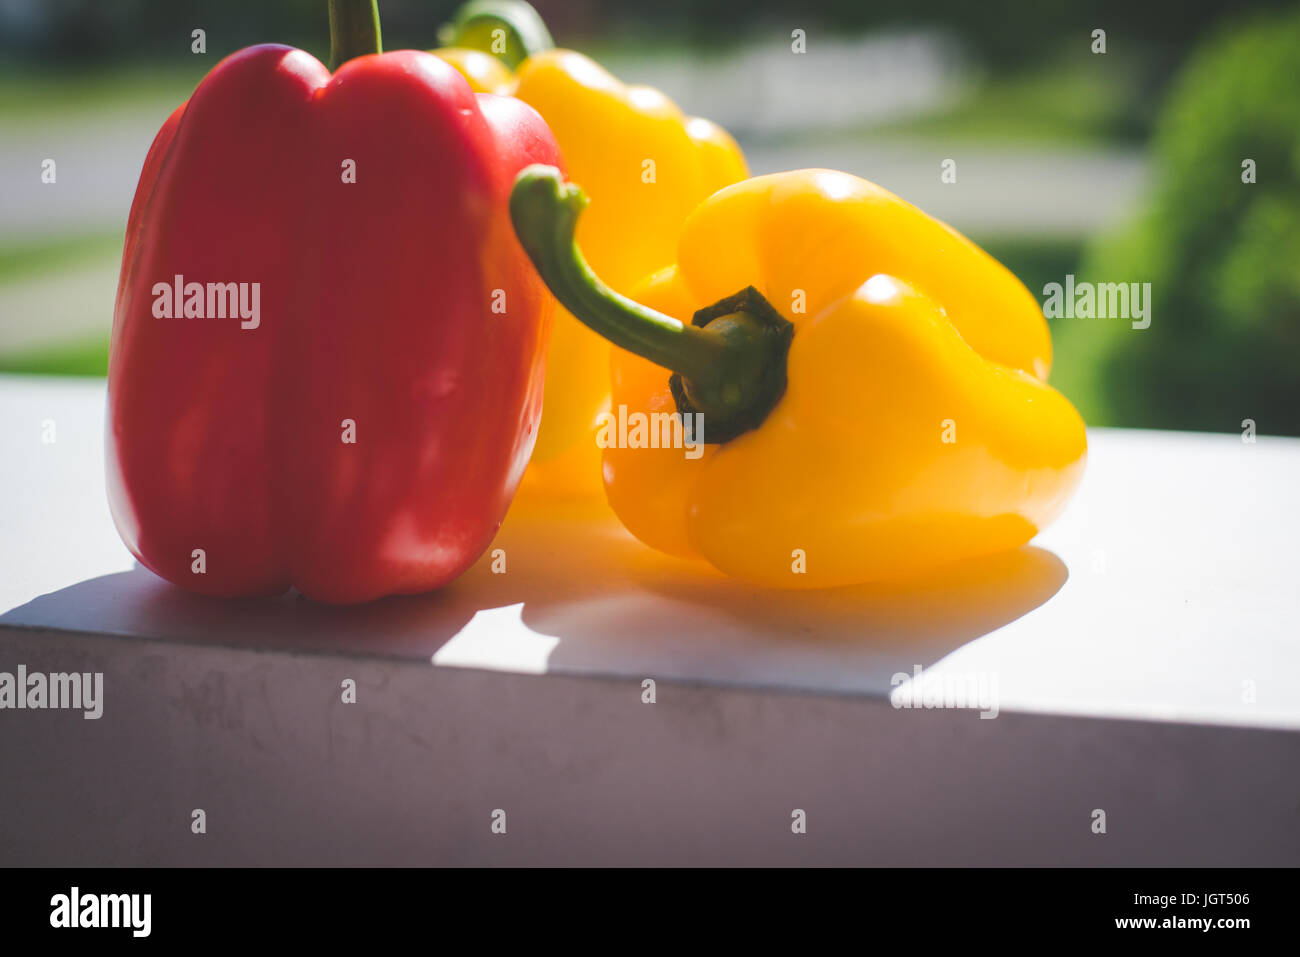 Three peppers, yellow and red, displayed on a counter. - Stock Image